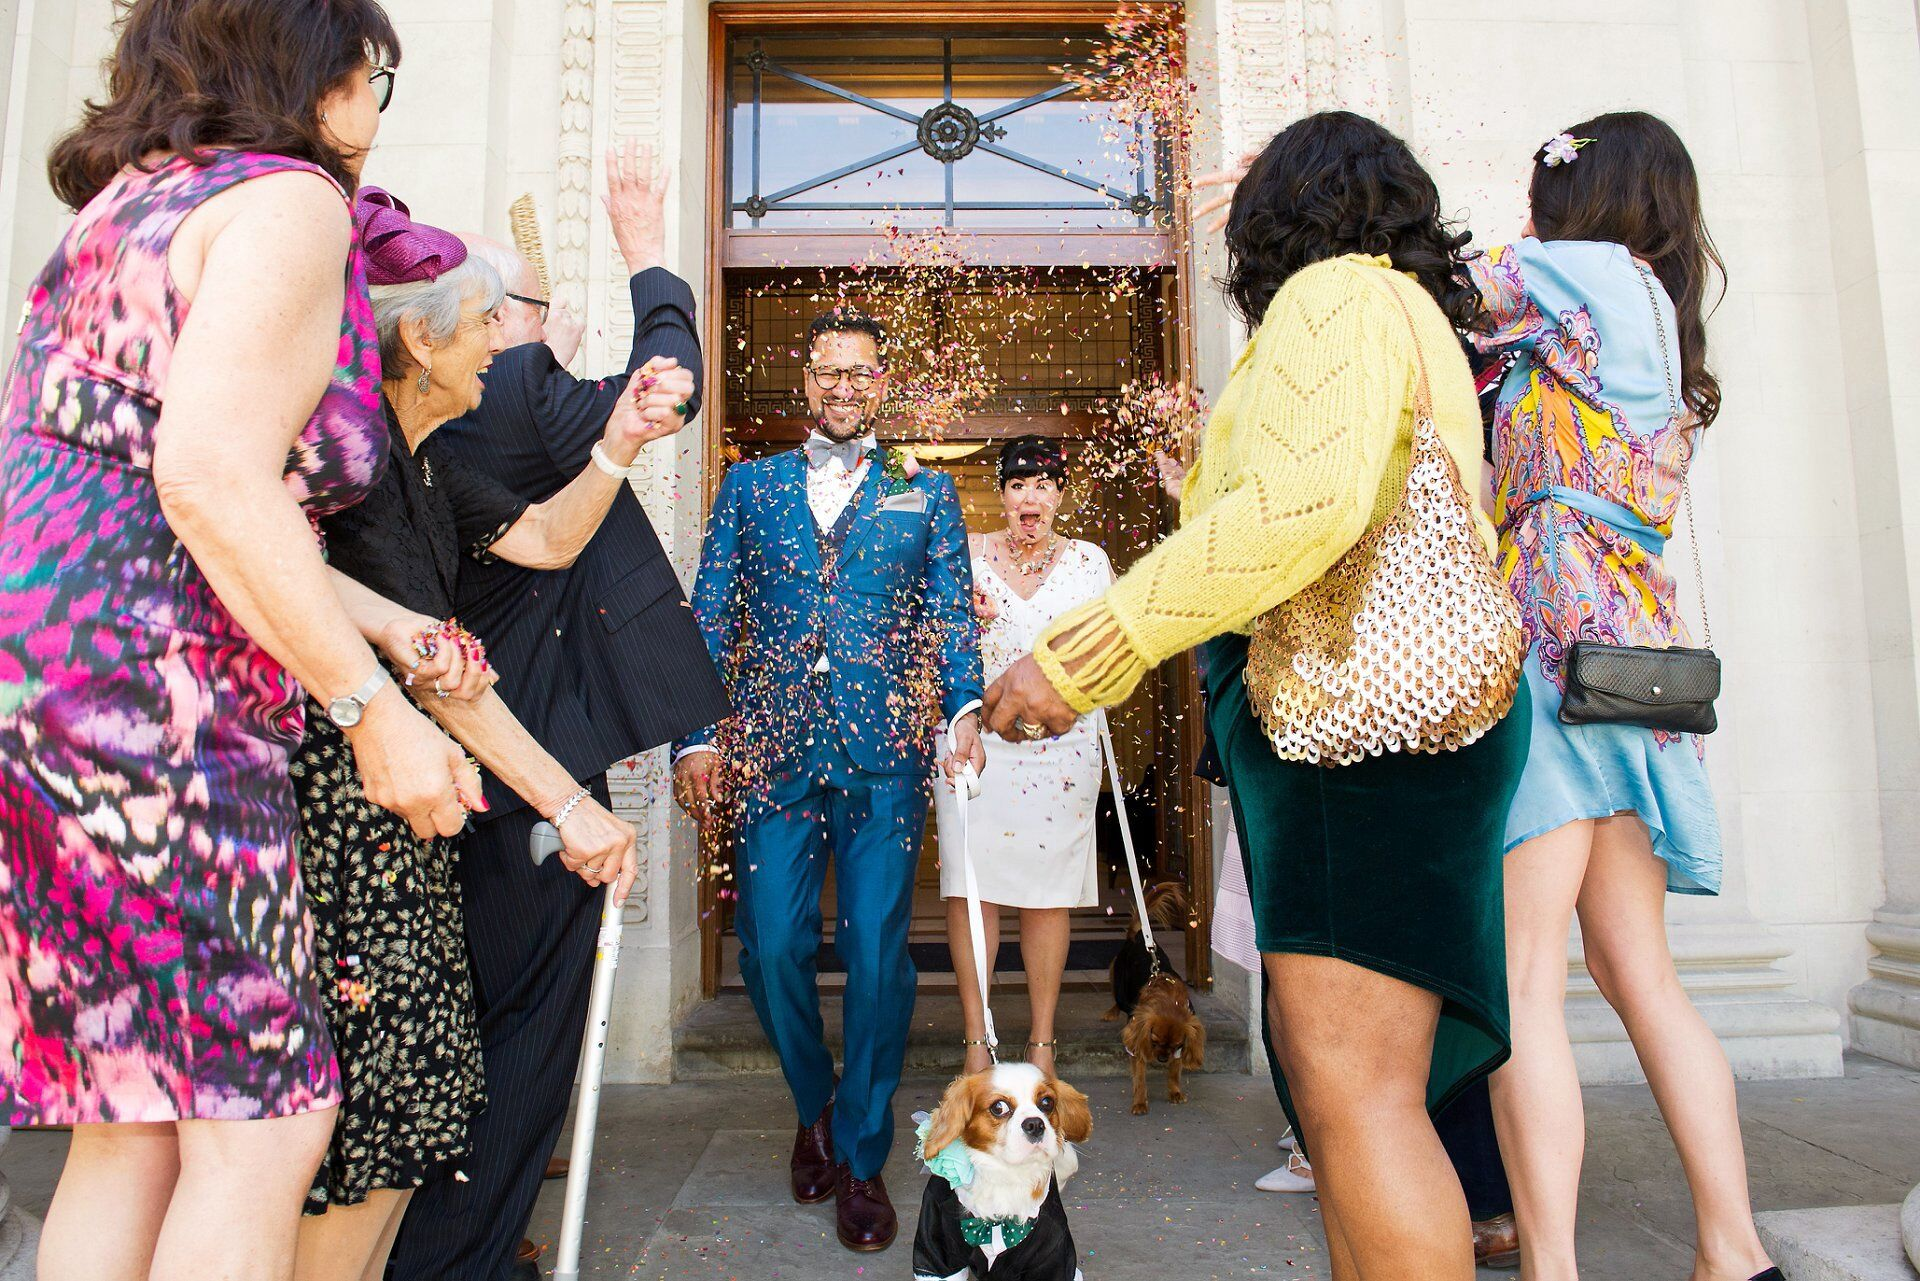 westminster register office wedding photographer emma duggan captures bride and groom and their two dogs leaving old marylebone town hall